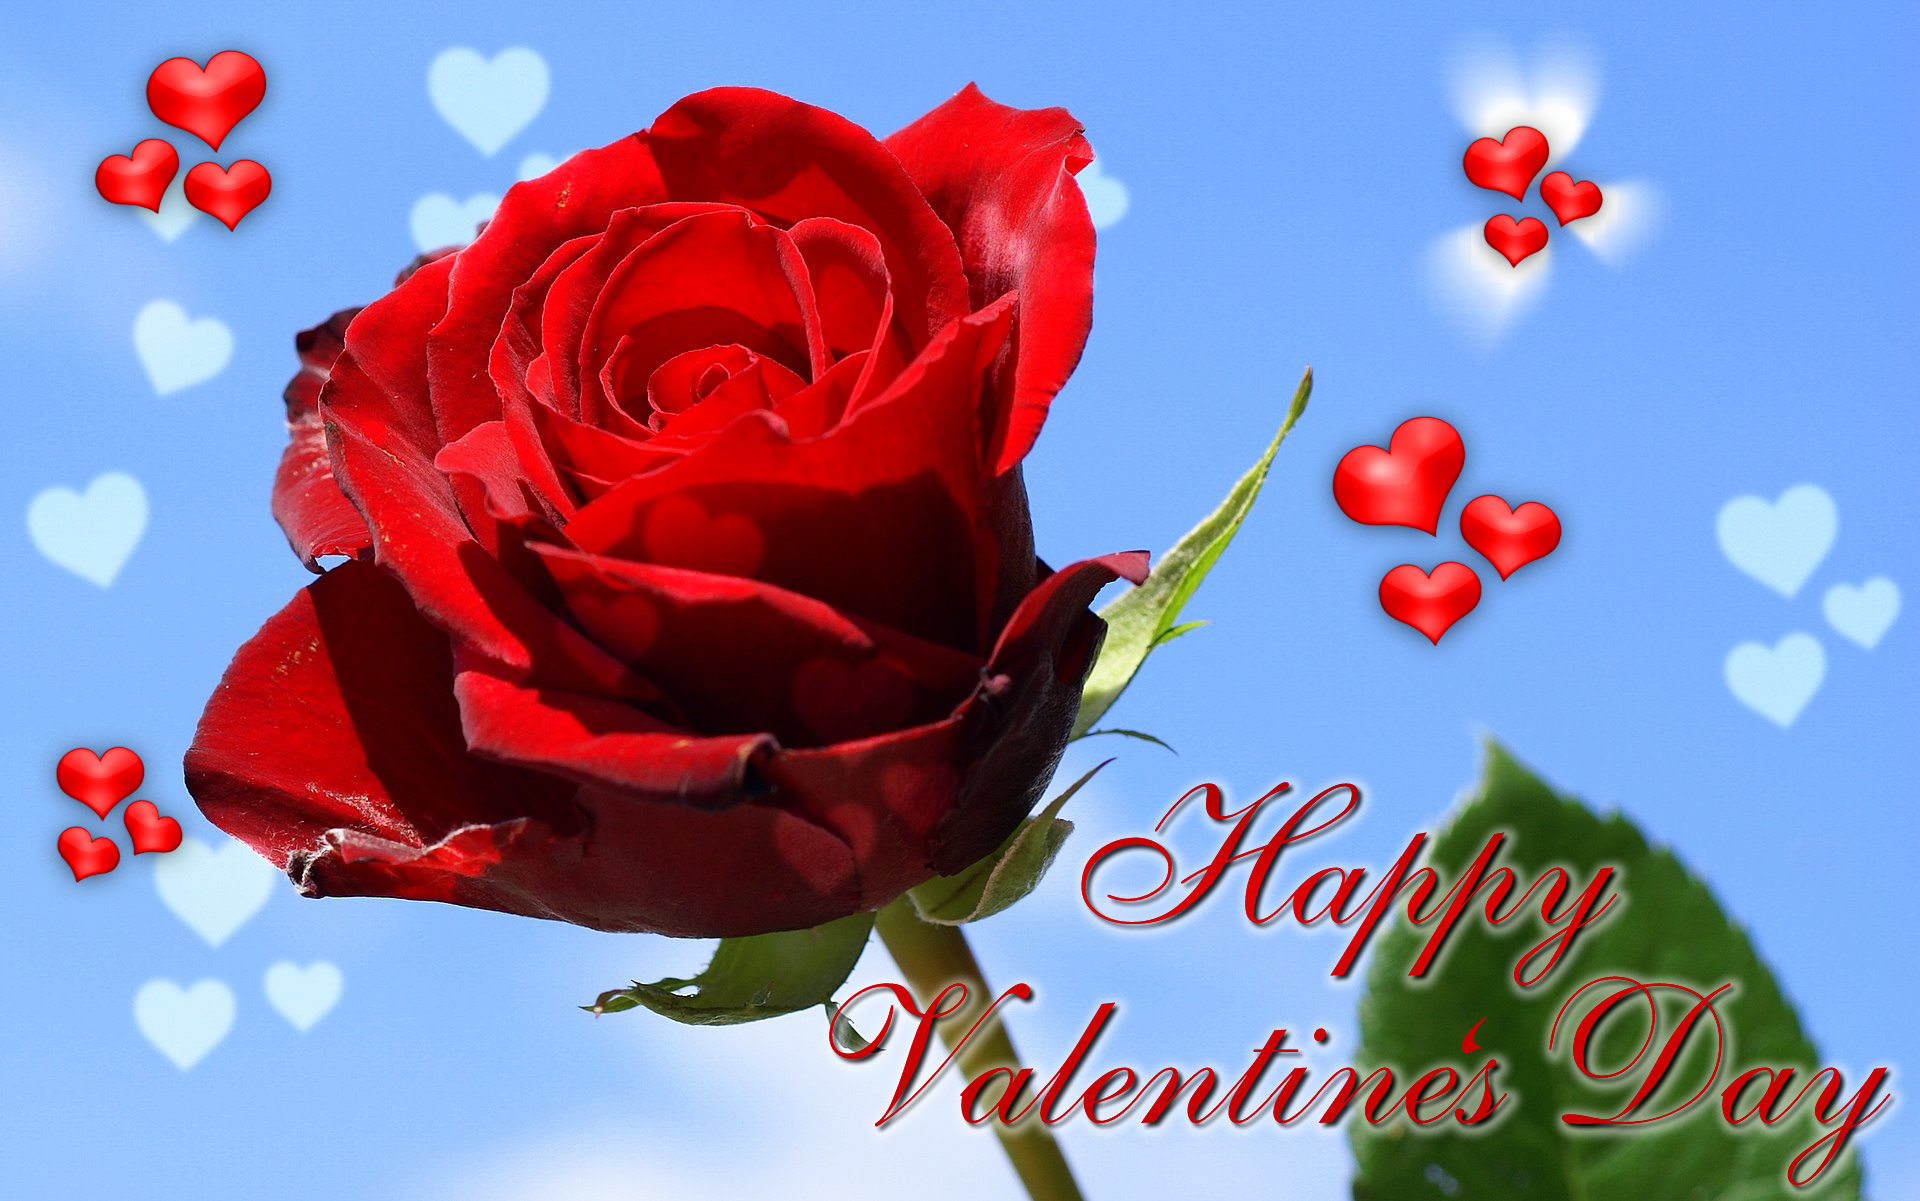 Love Wallpapers Valentine Day : Love Wallpapers Romantic Backgrounds Twitter Valentine Day Myspace